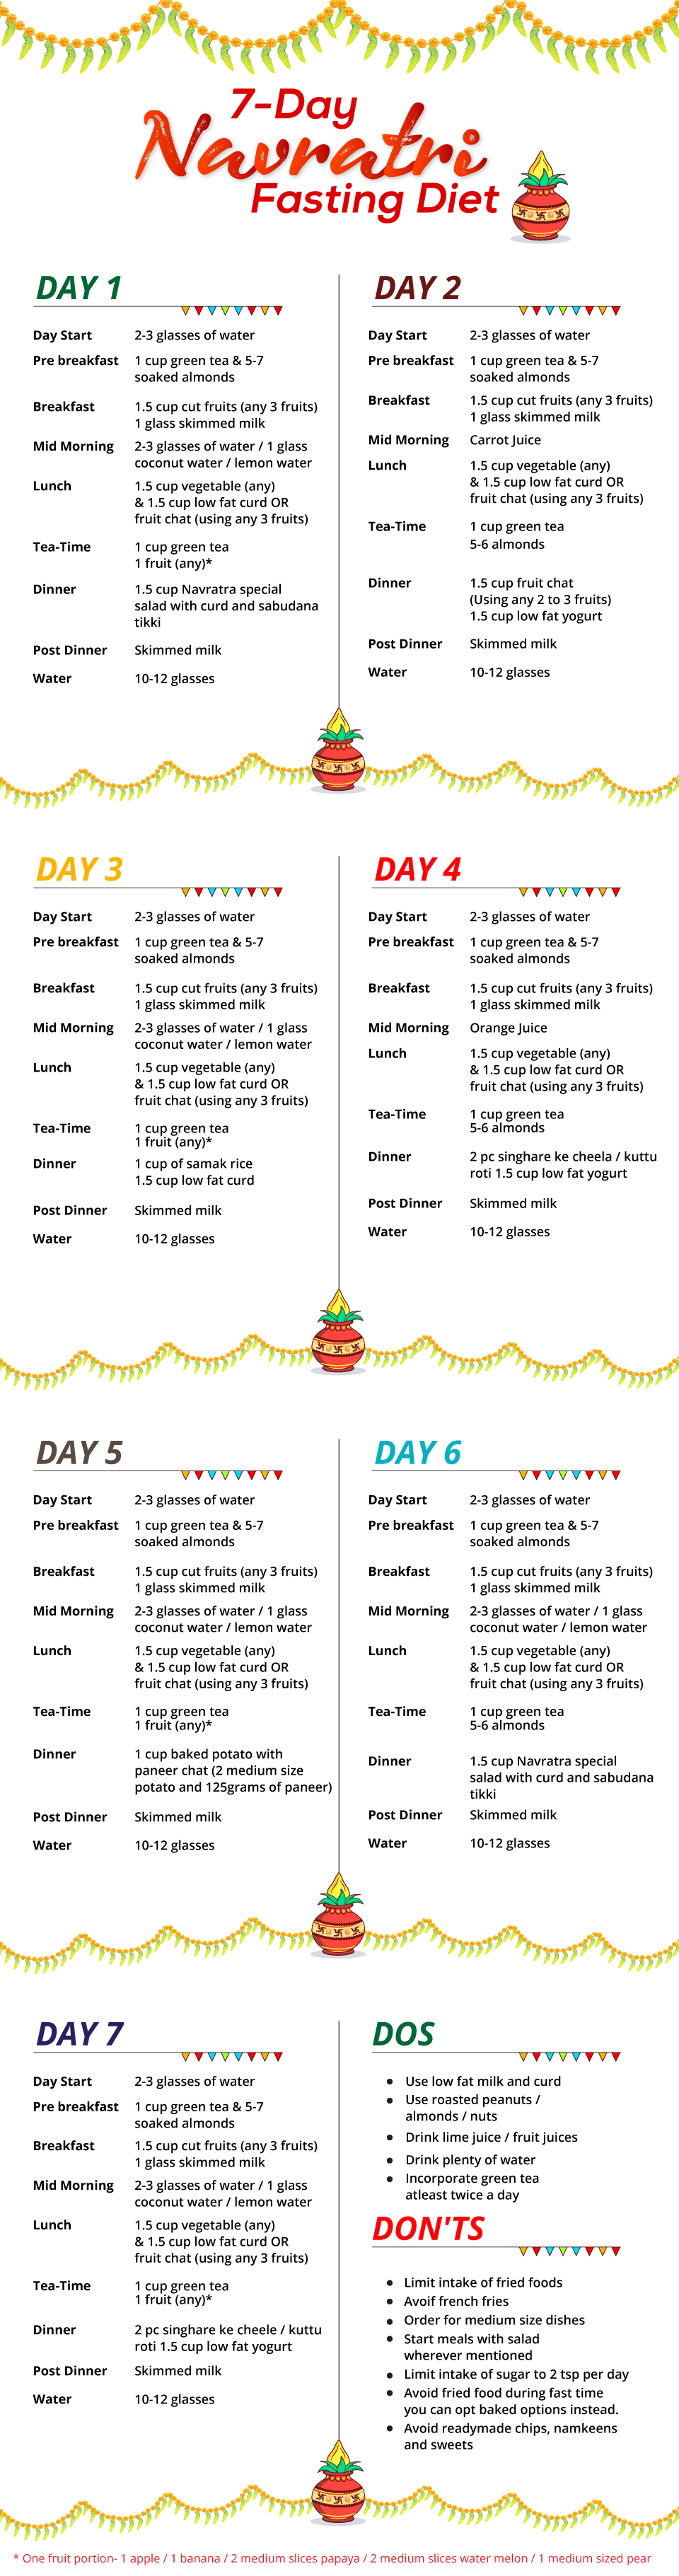 Navratri fasting diet also bhavi pinterest bodies food and weight loss rh